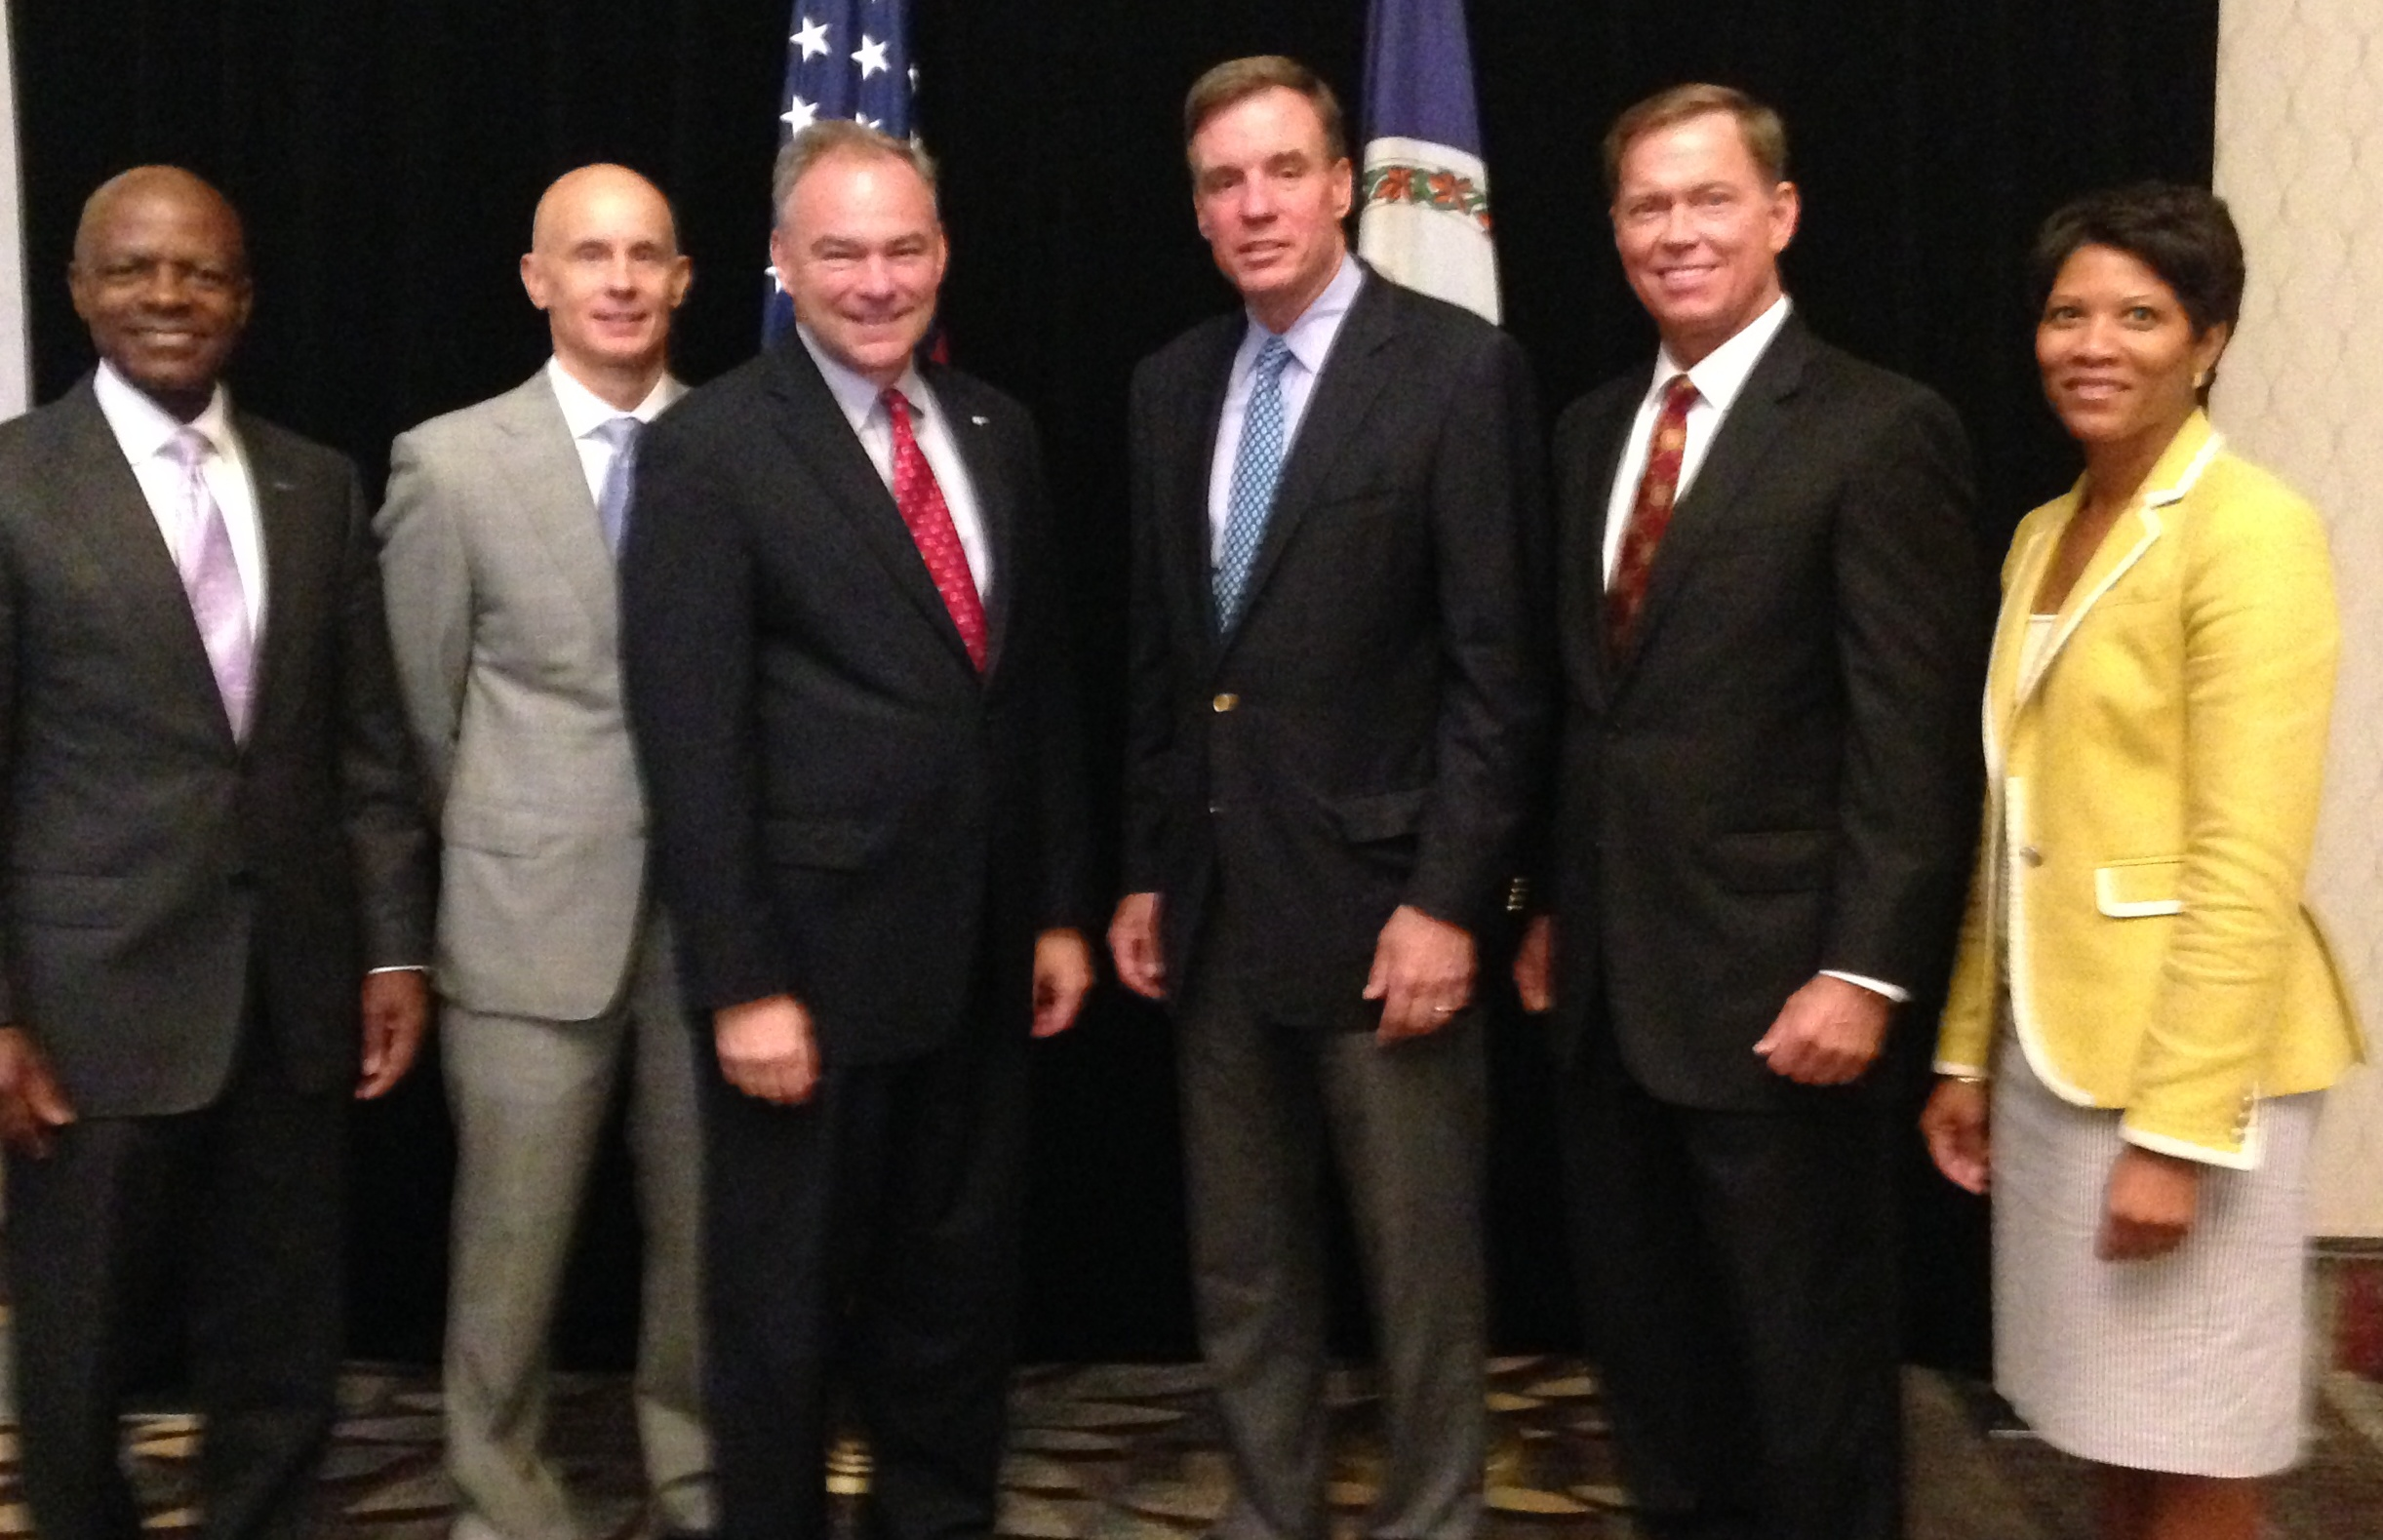 U.S. Senators Warner and Kaine Participate in Chamber Forum